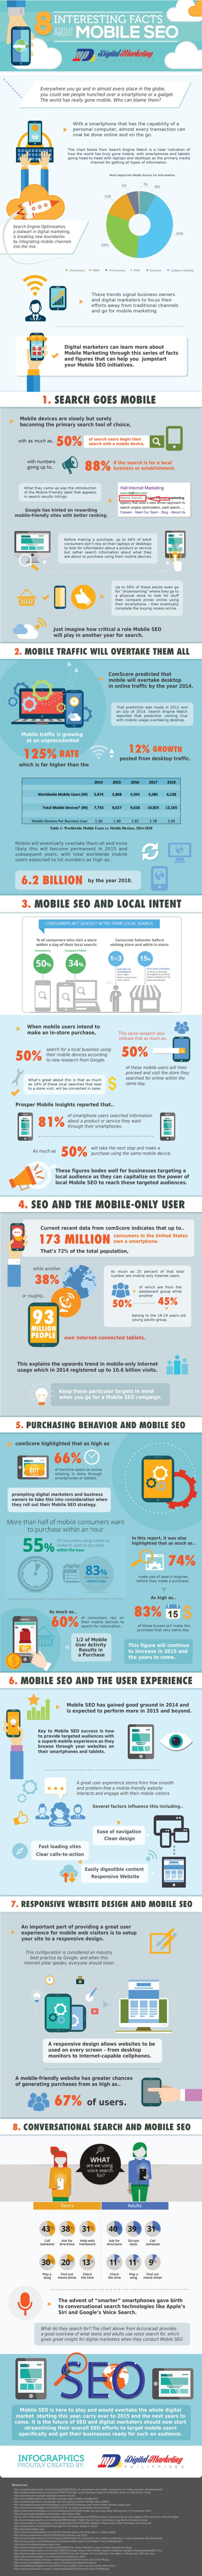 8-Interesting-Facts-about-Mobile-SEO